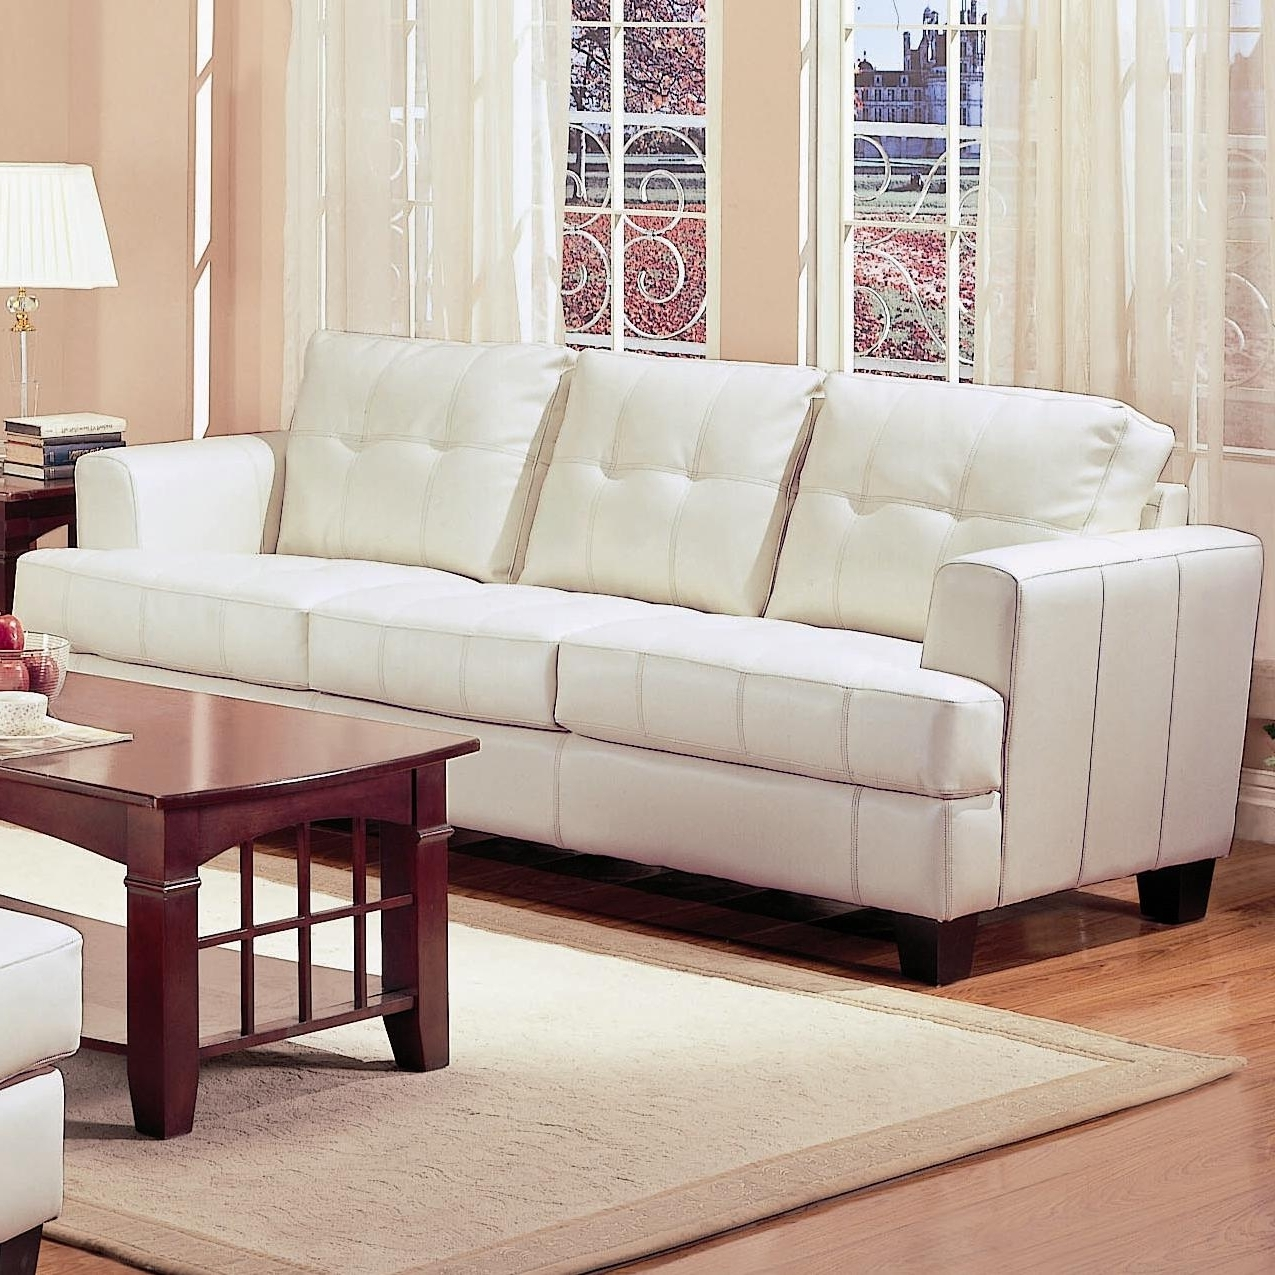 Recent Furniture: Elegant White Tufted Sofaashley Furniture Austin With Regard To Ashley Tufted Sofas (View 18 of 20)